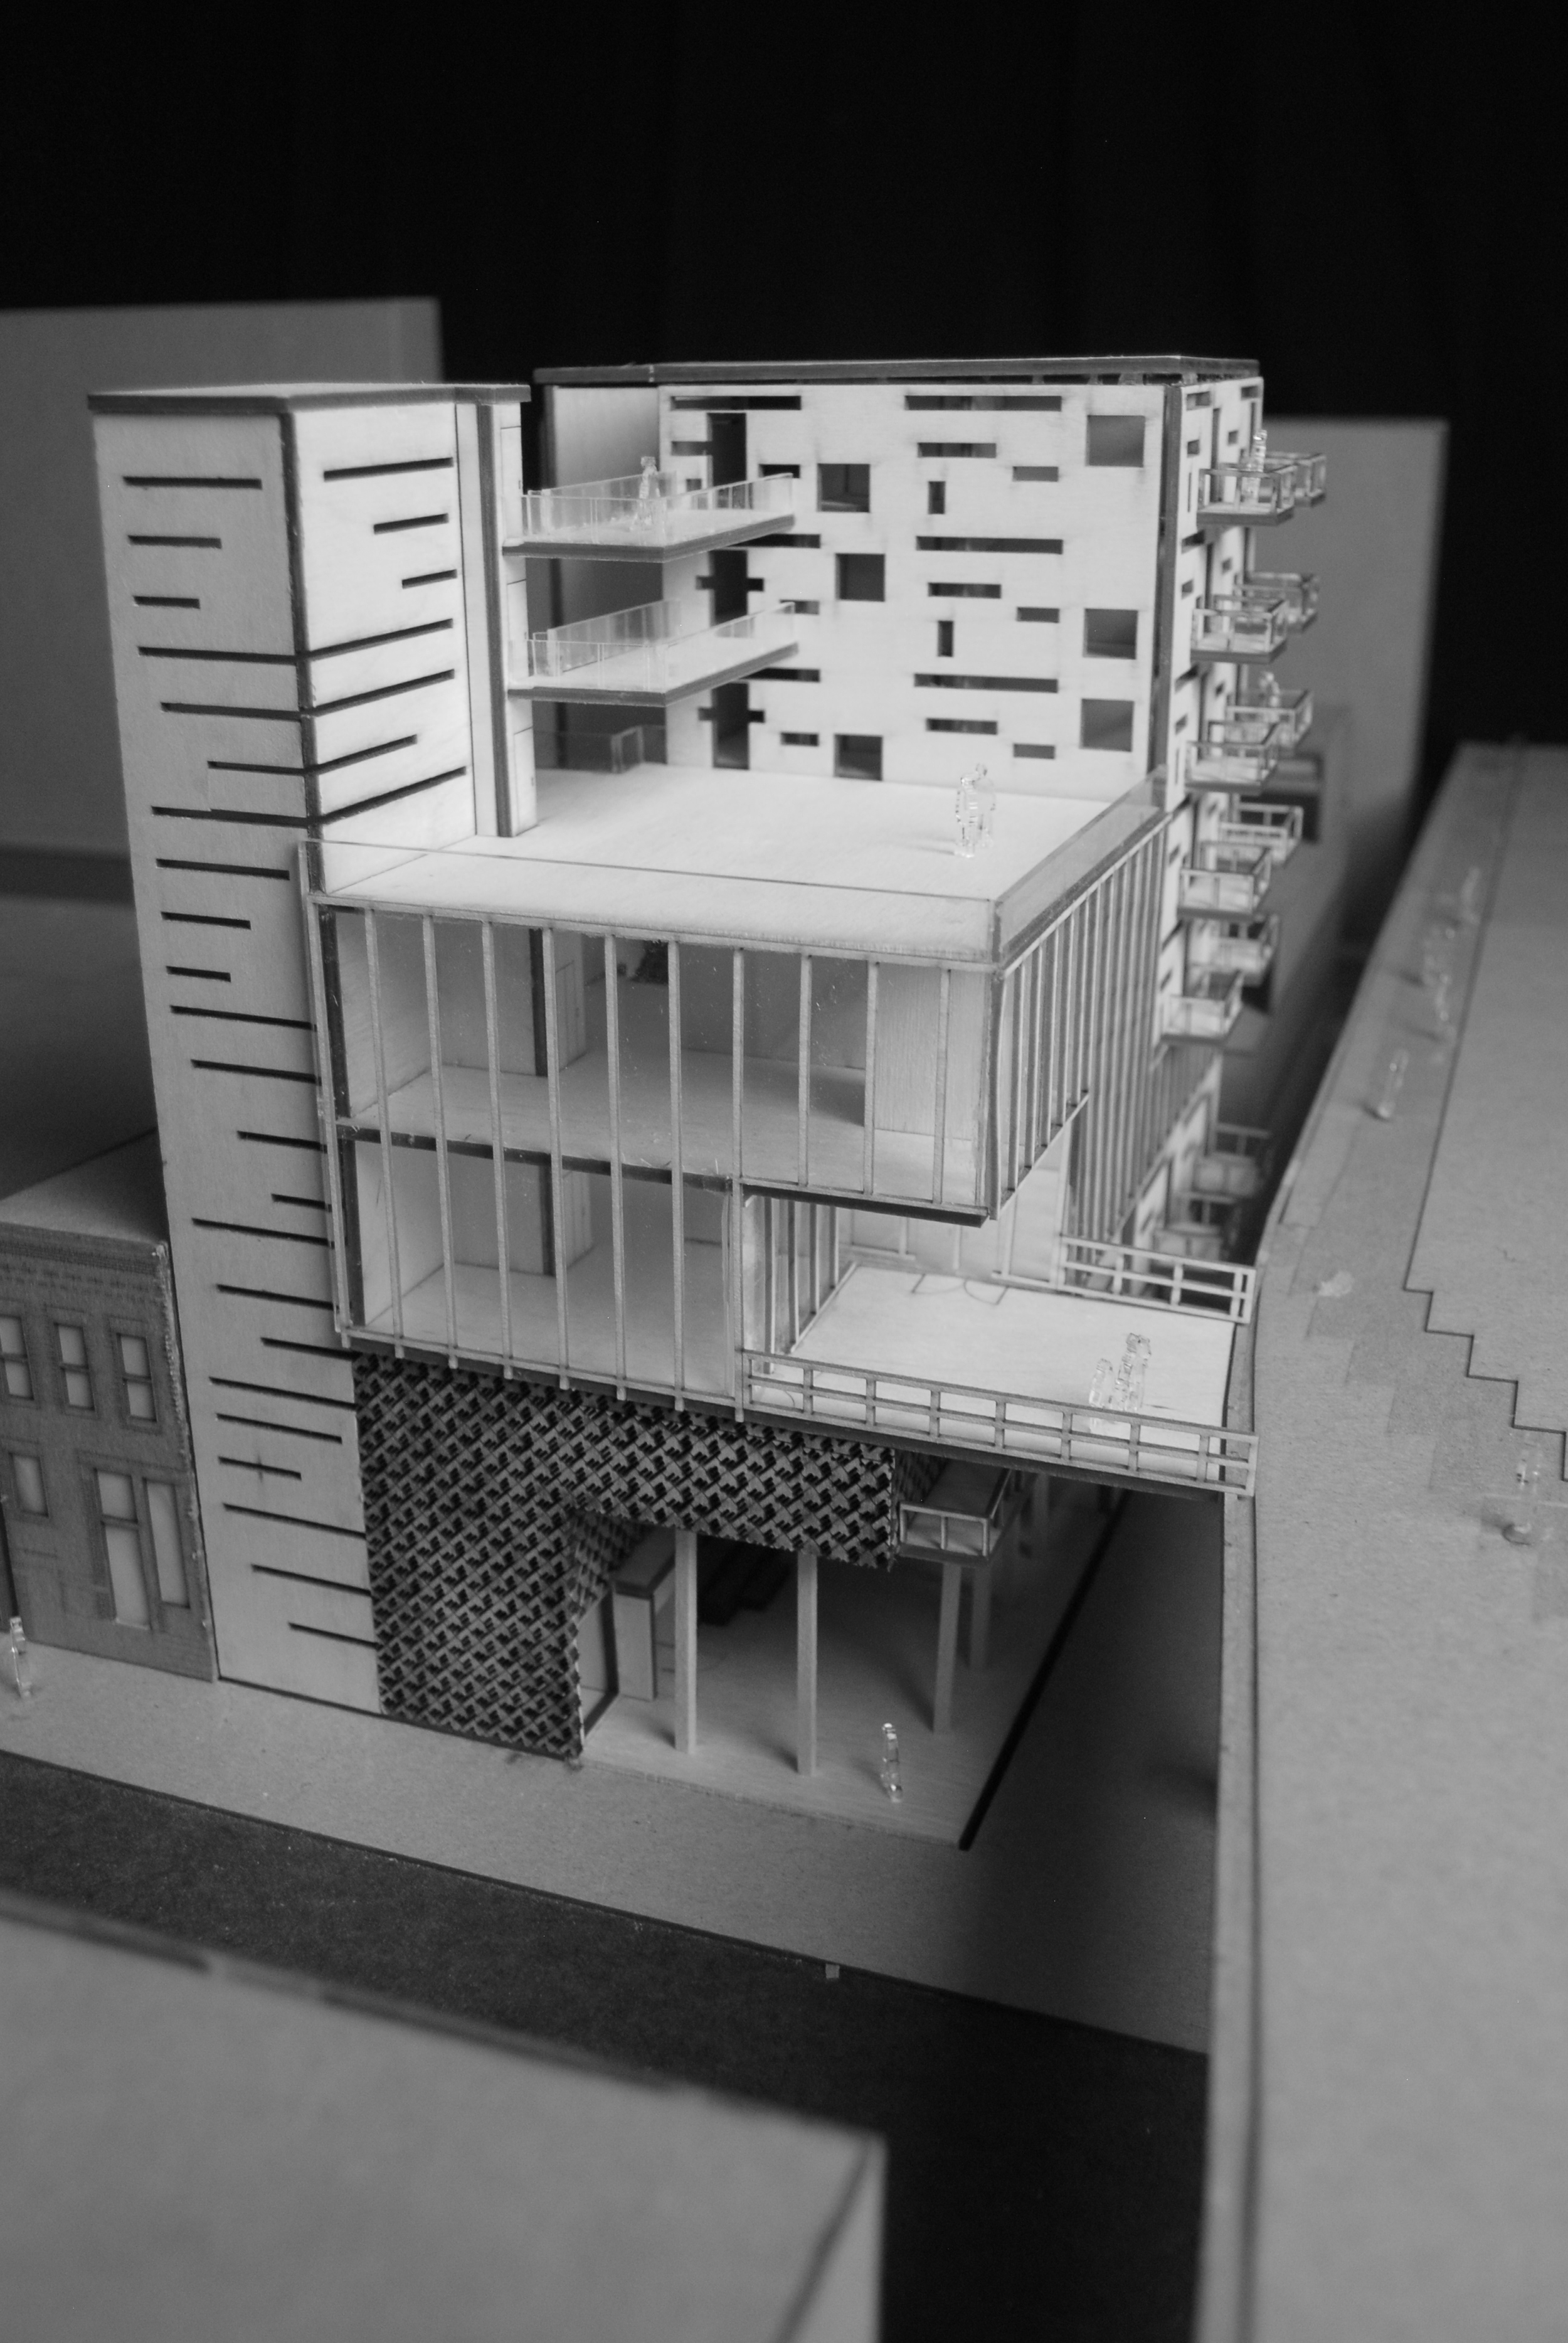 PHYSICAL MODEL IN SITE